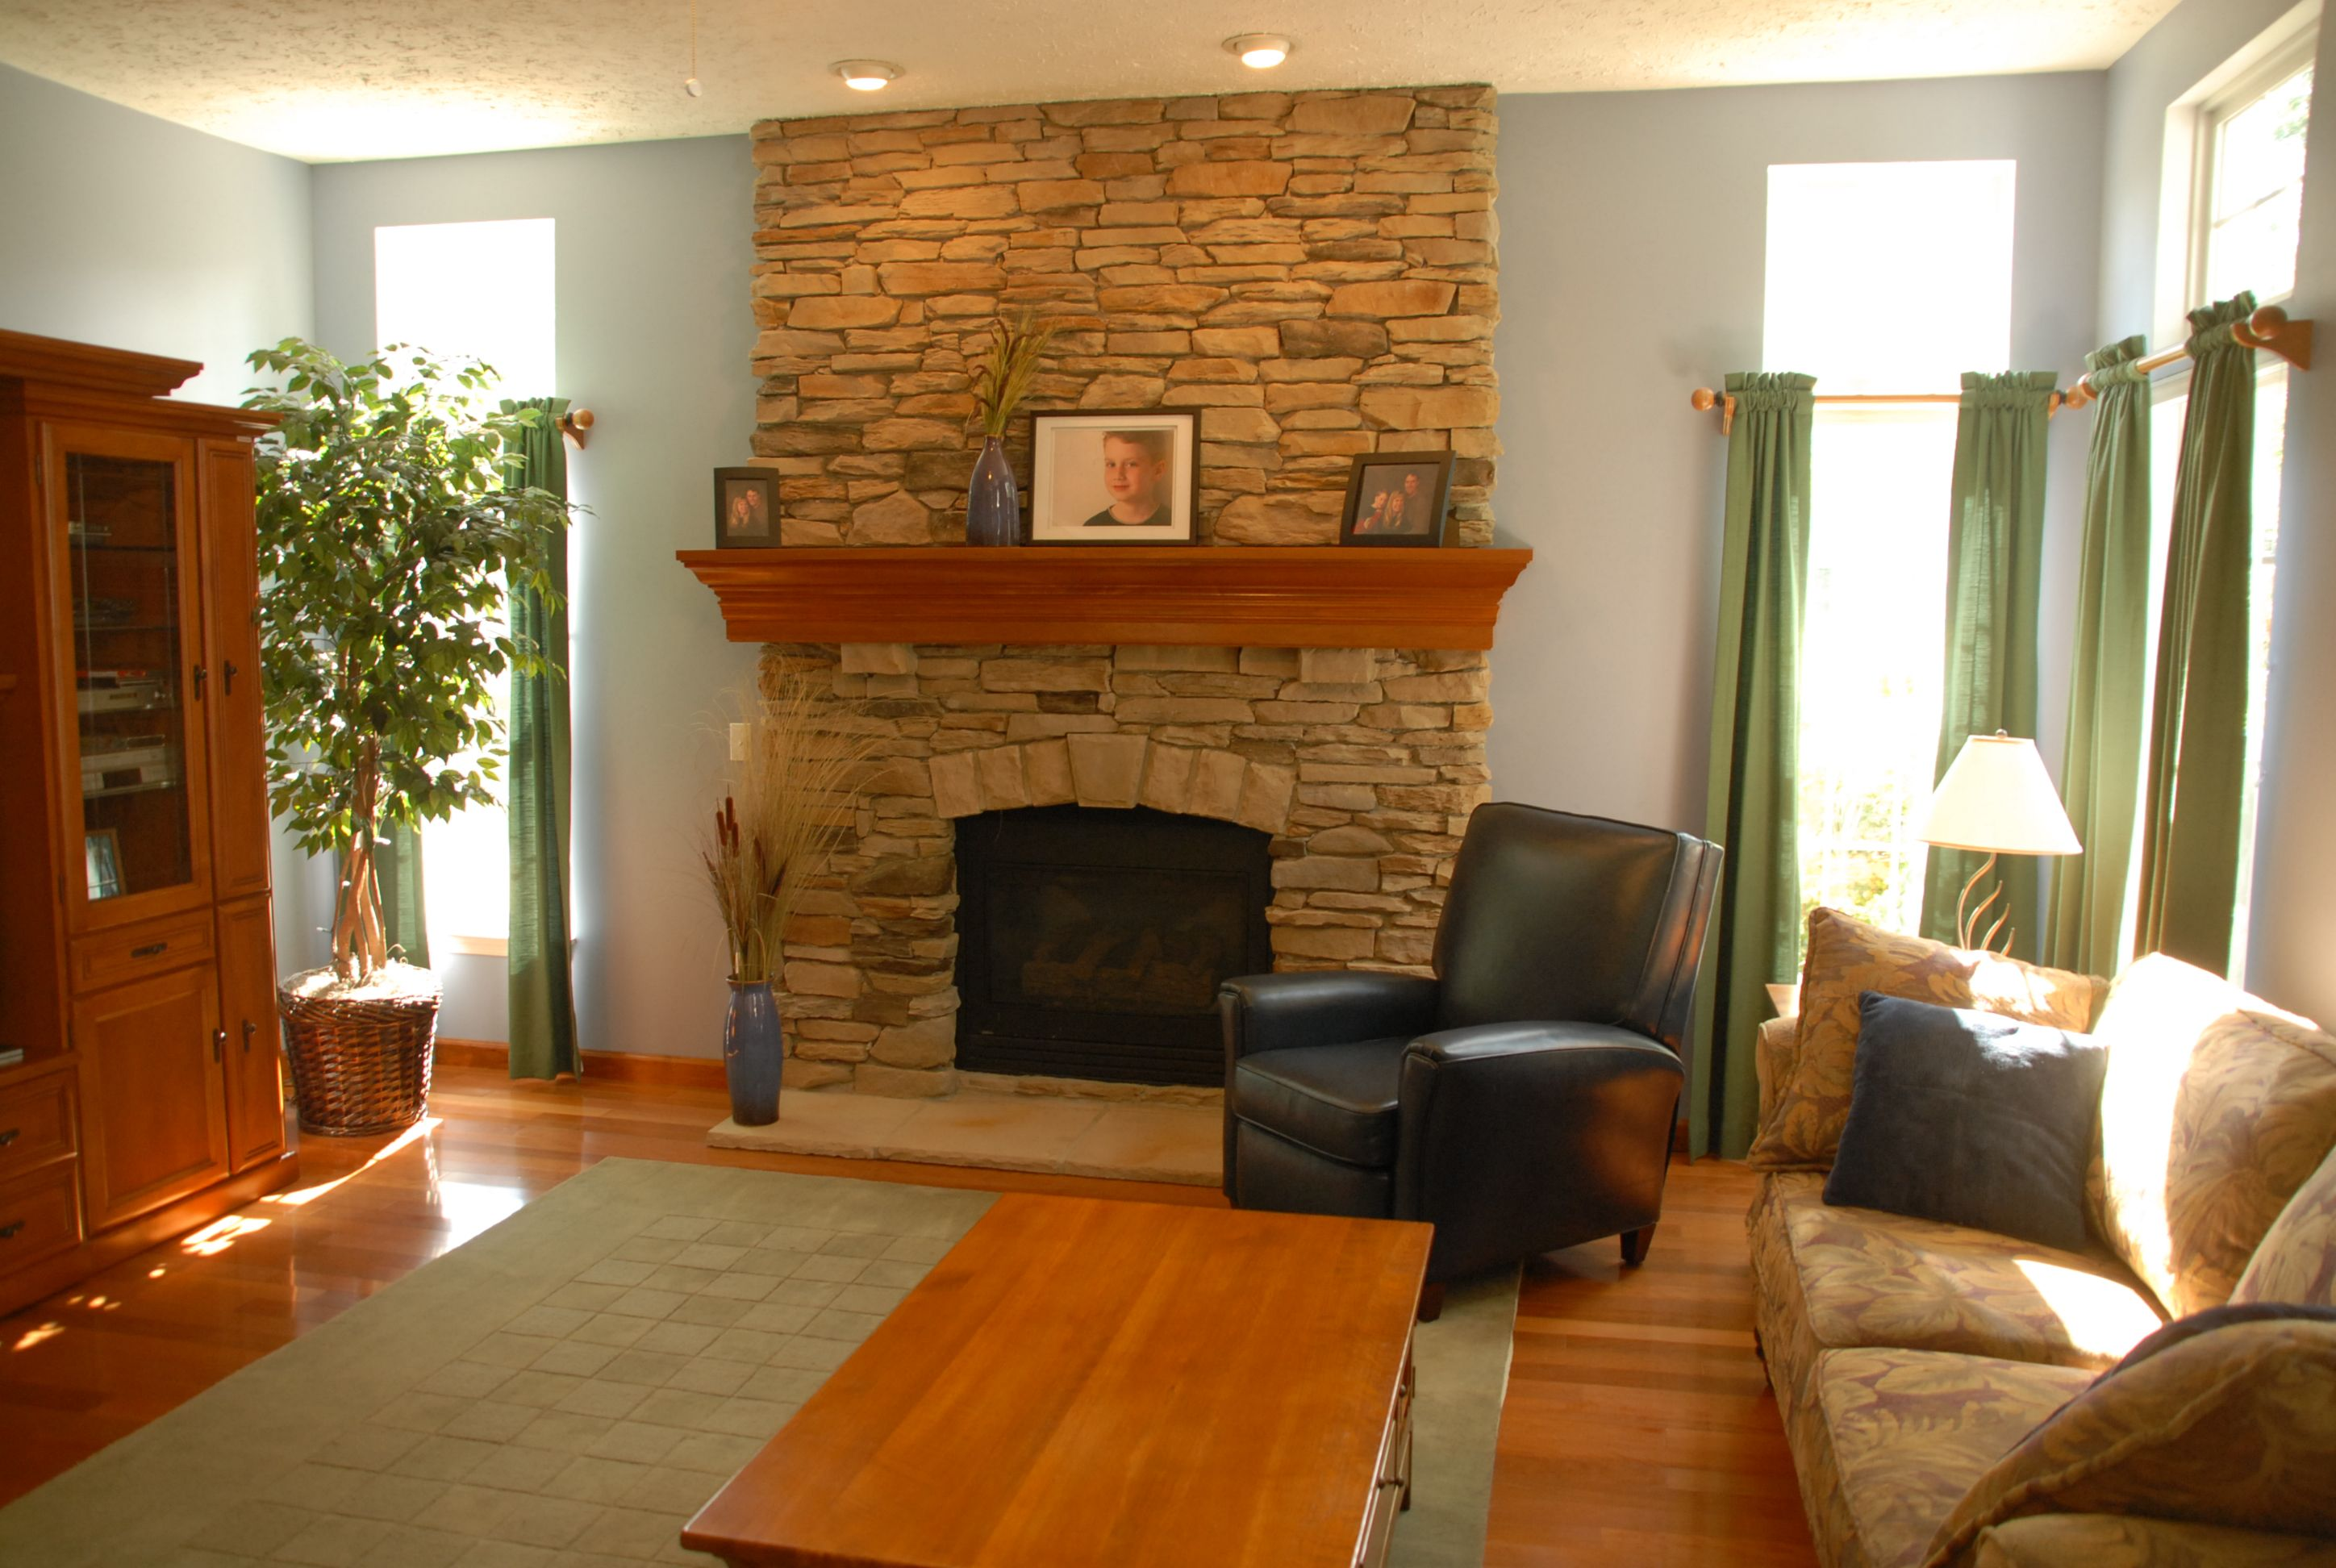 craftsman style fireplaces google search fireplaces. Black Bedroom Furniture Sets. Home Design Ideas